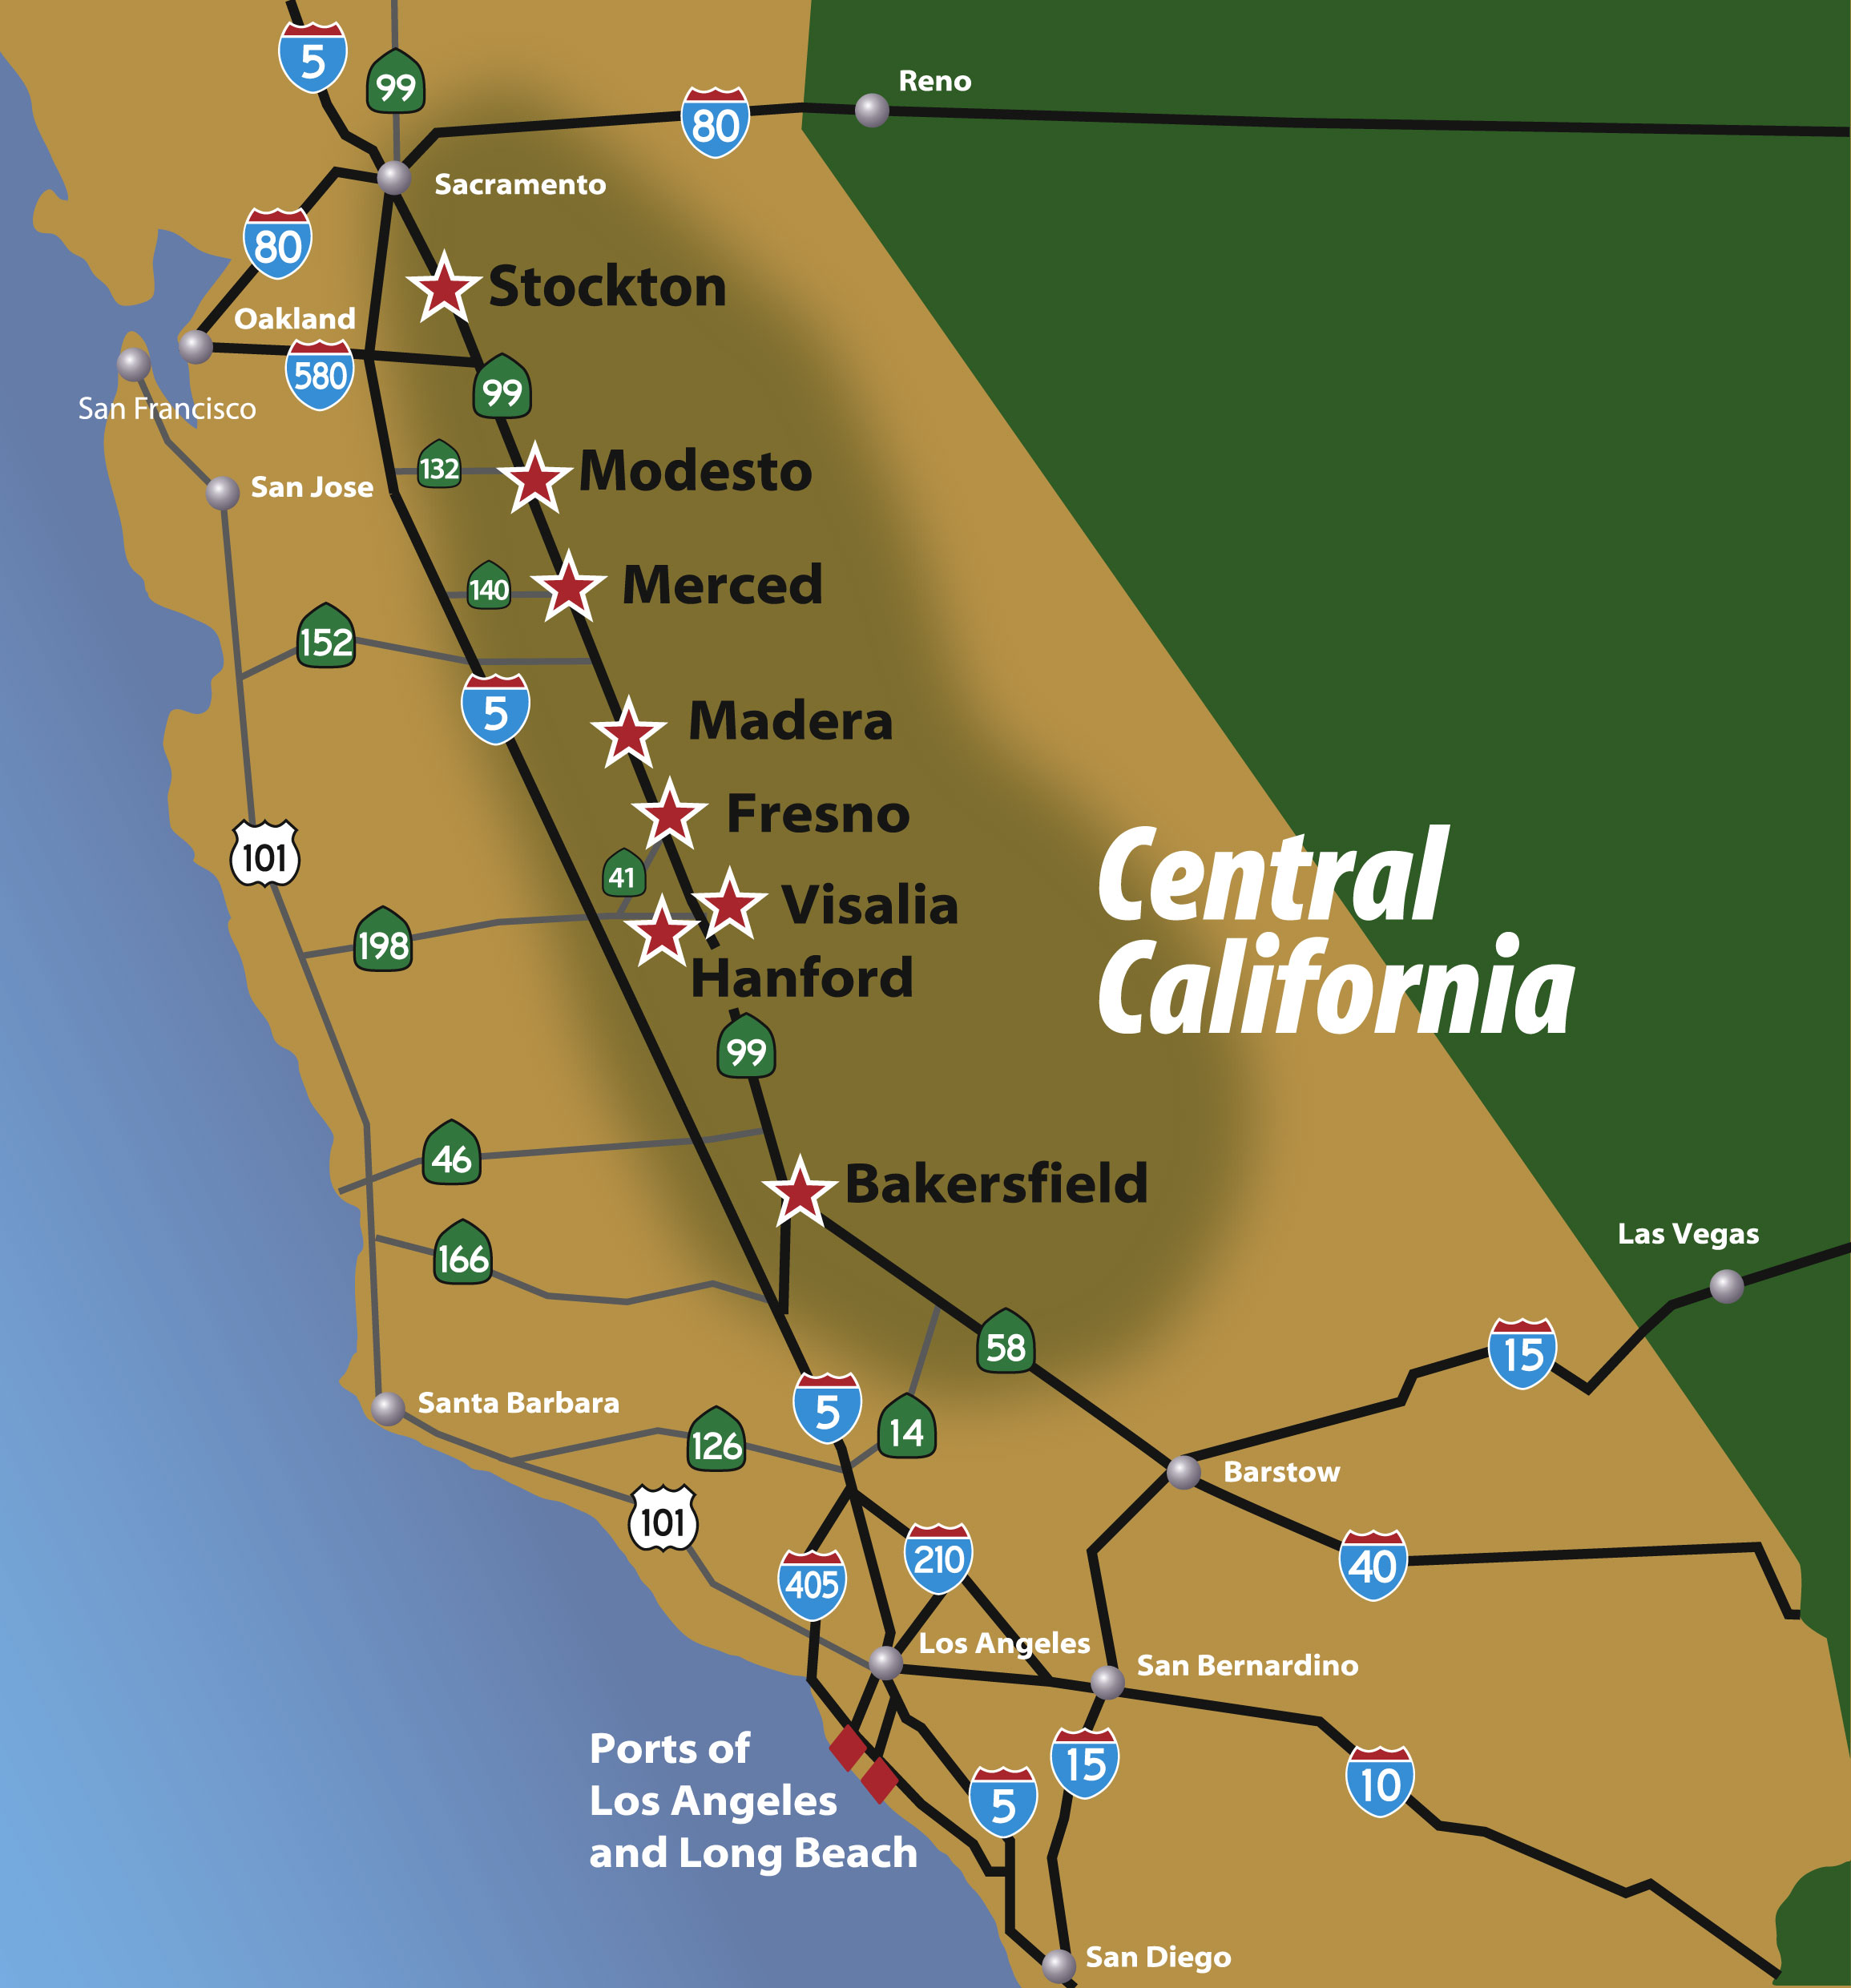 Map Of Central California Regional Maps – Central California Map Of Central California